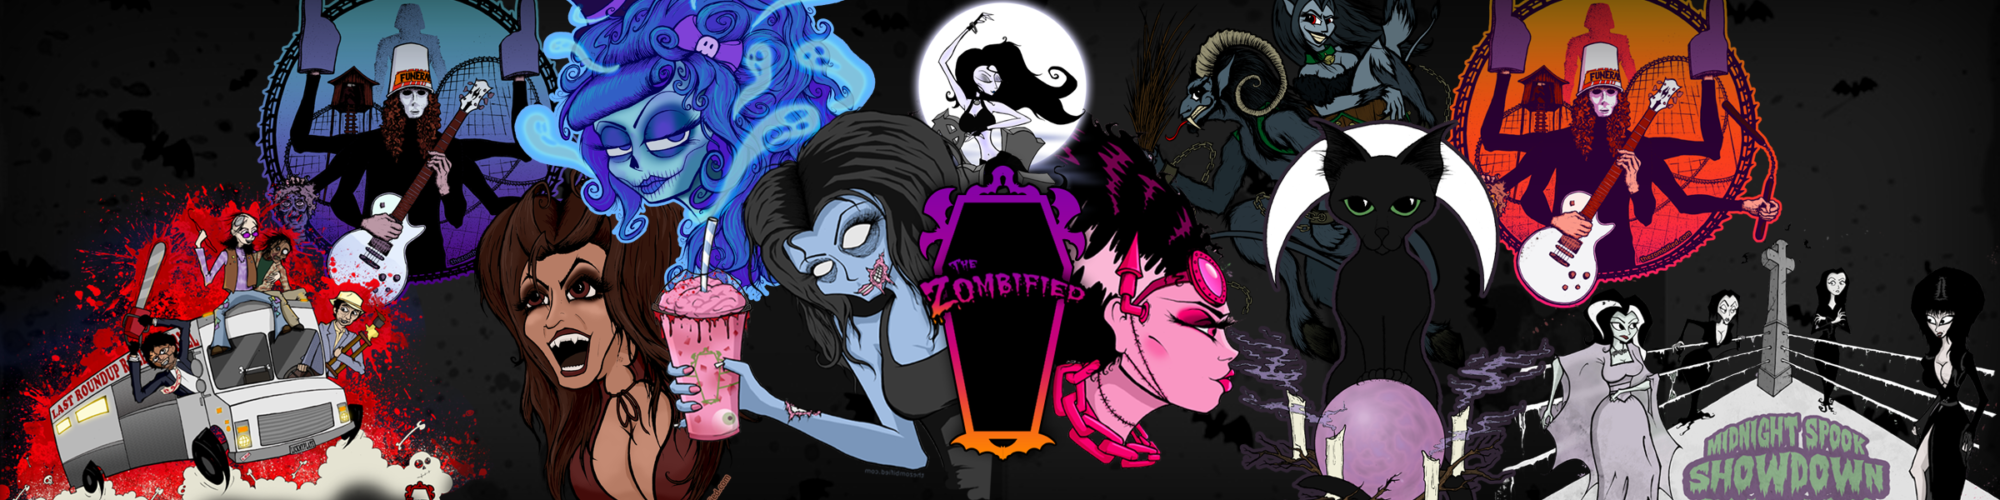 The Zombified – Undead Art for the Darkly Inclined